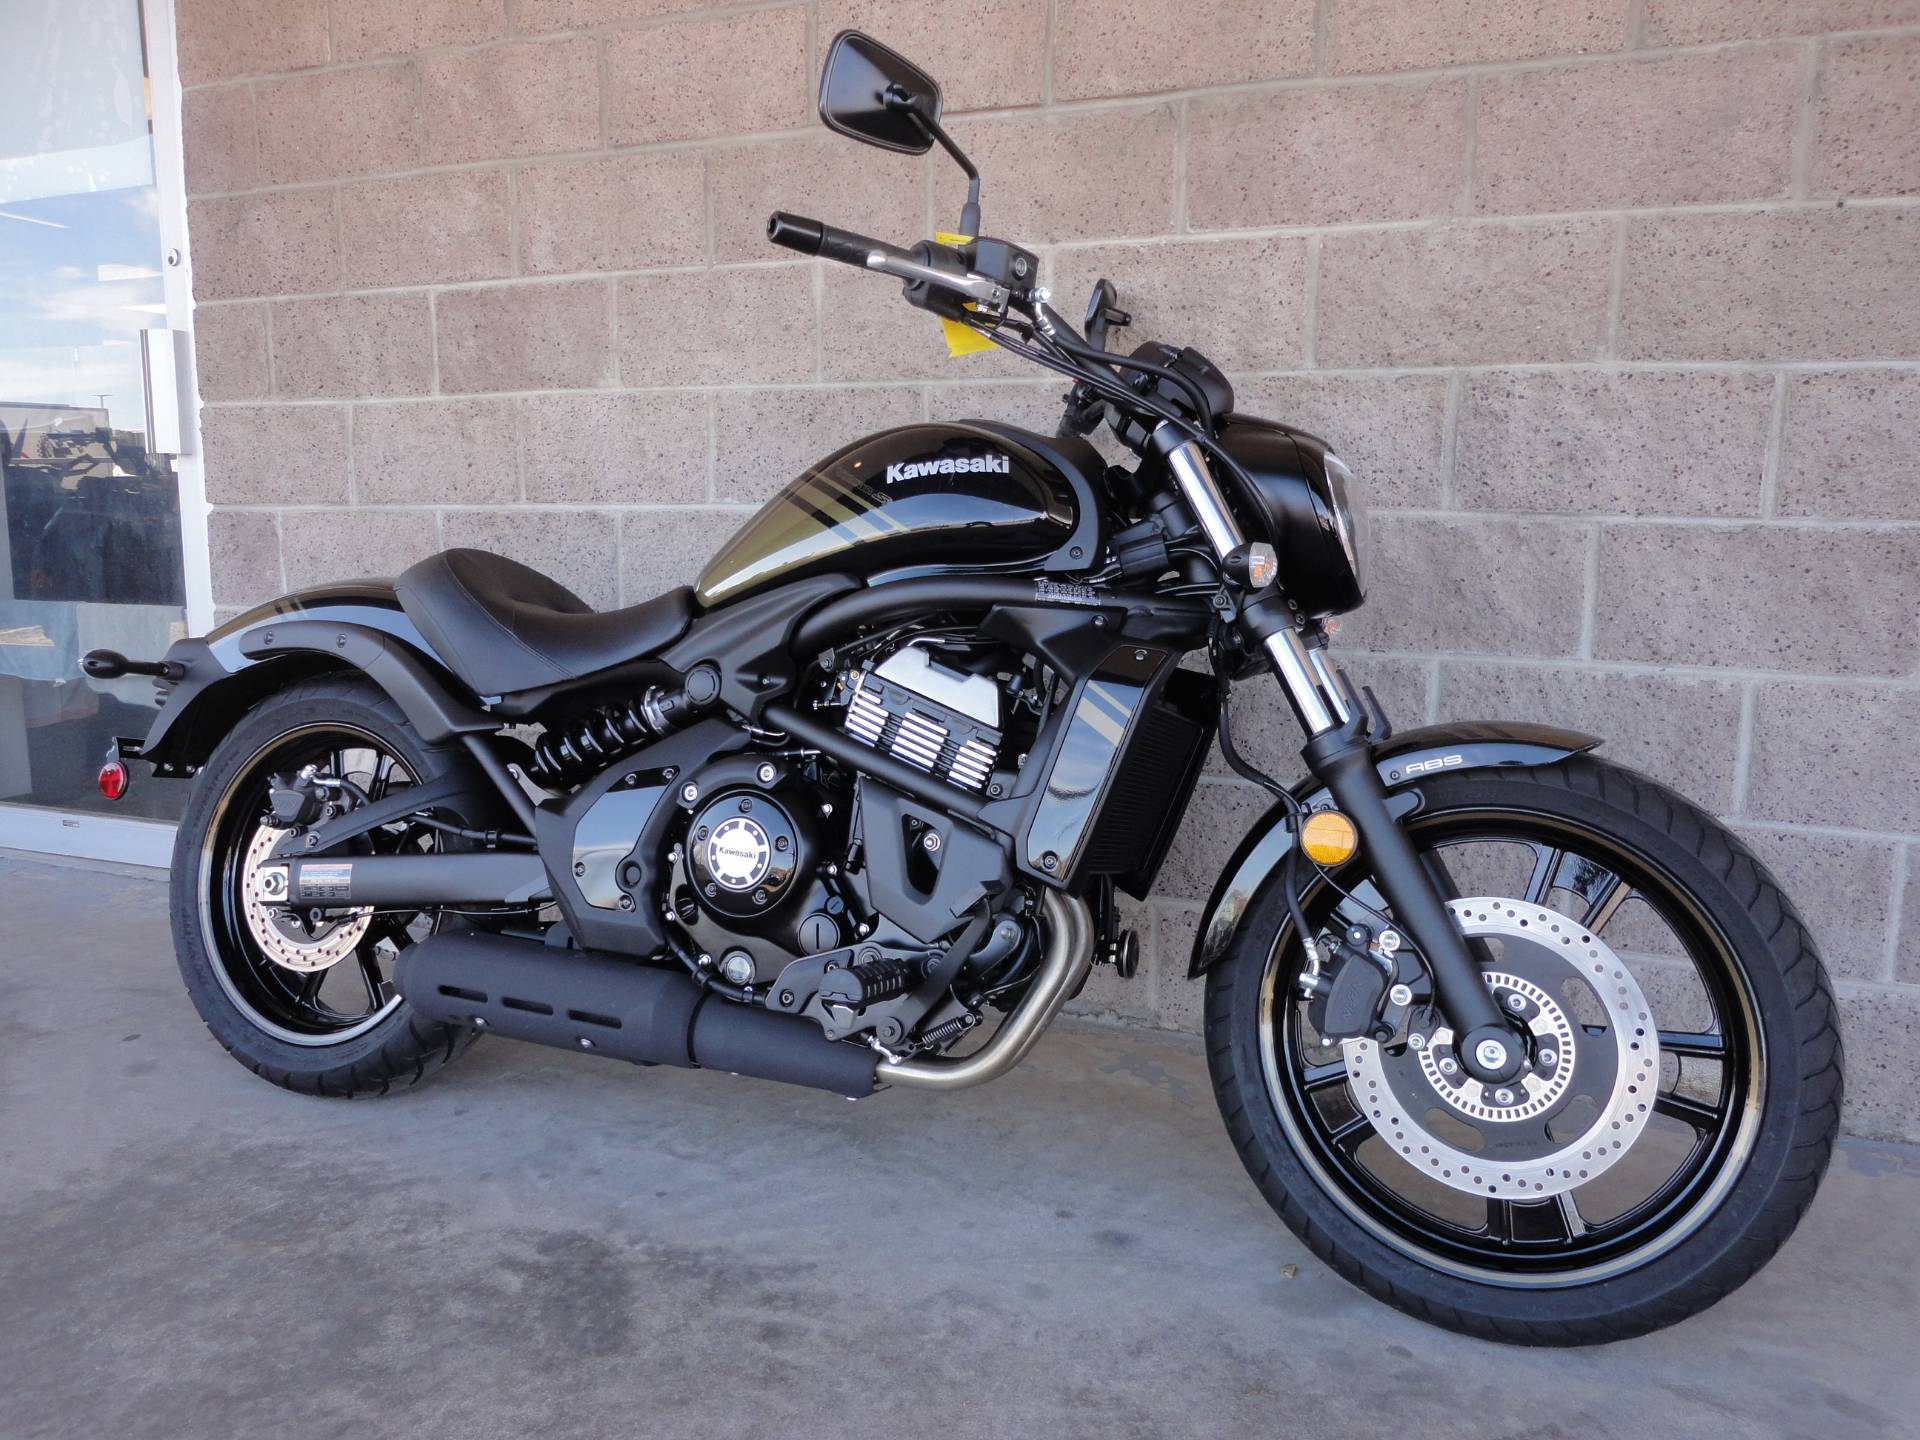 2020 Kawasaki Vulcan S ABS in Denver, Colorado - Photo 12